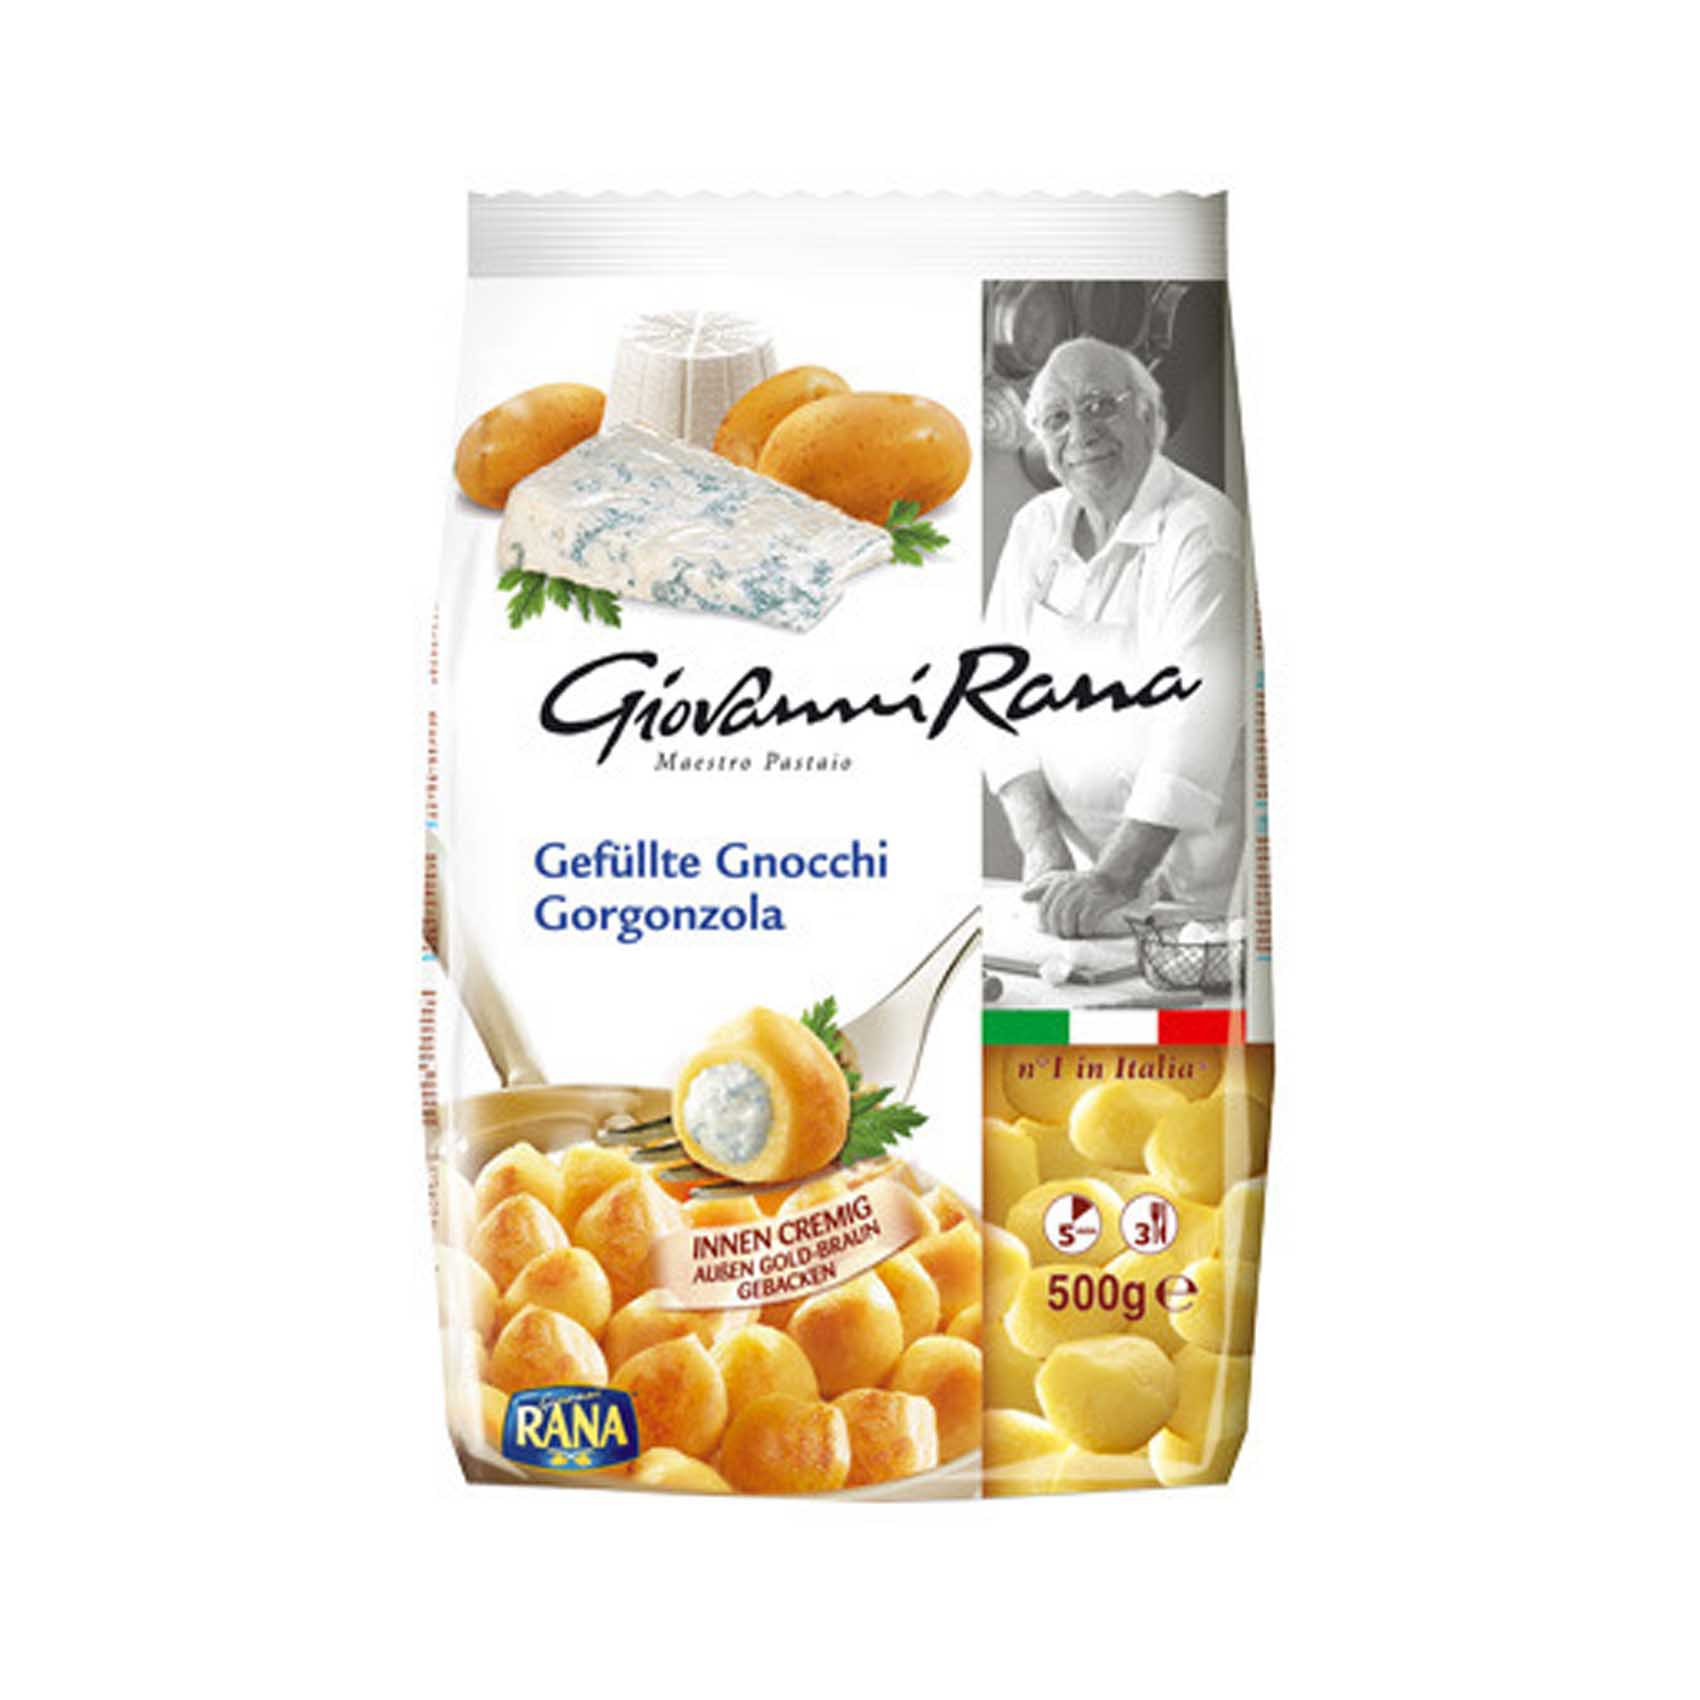 RANA GORGONZOLA FILLED GNOCCHI 500G